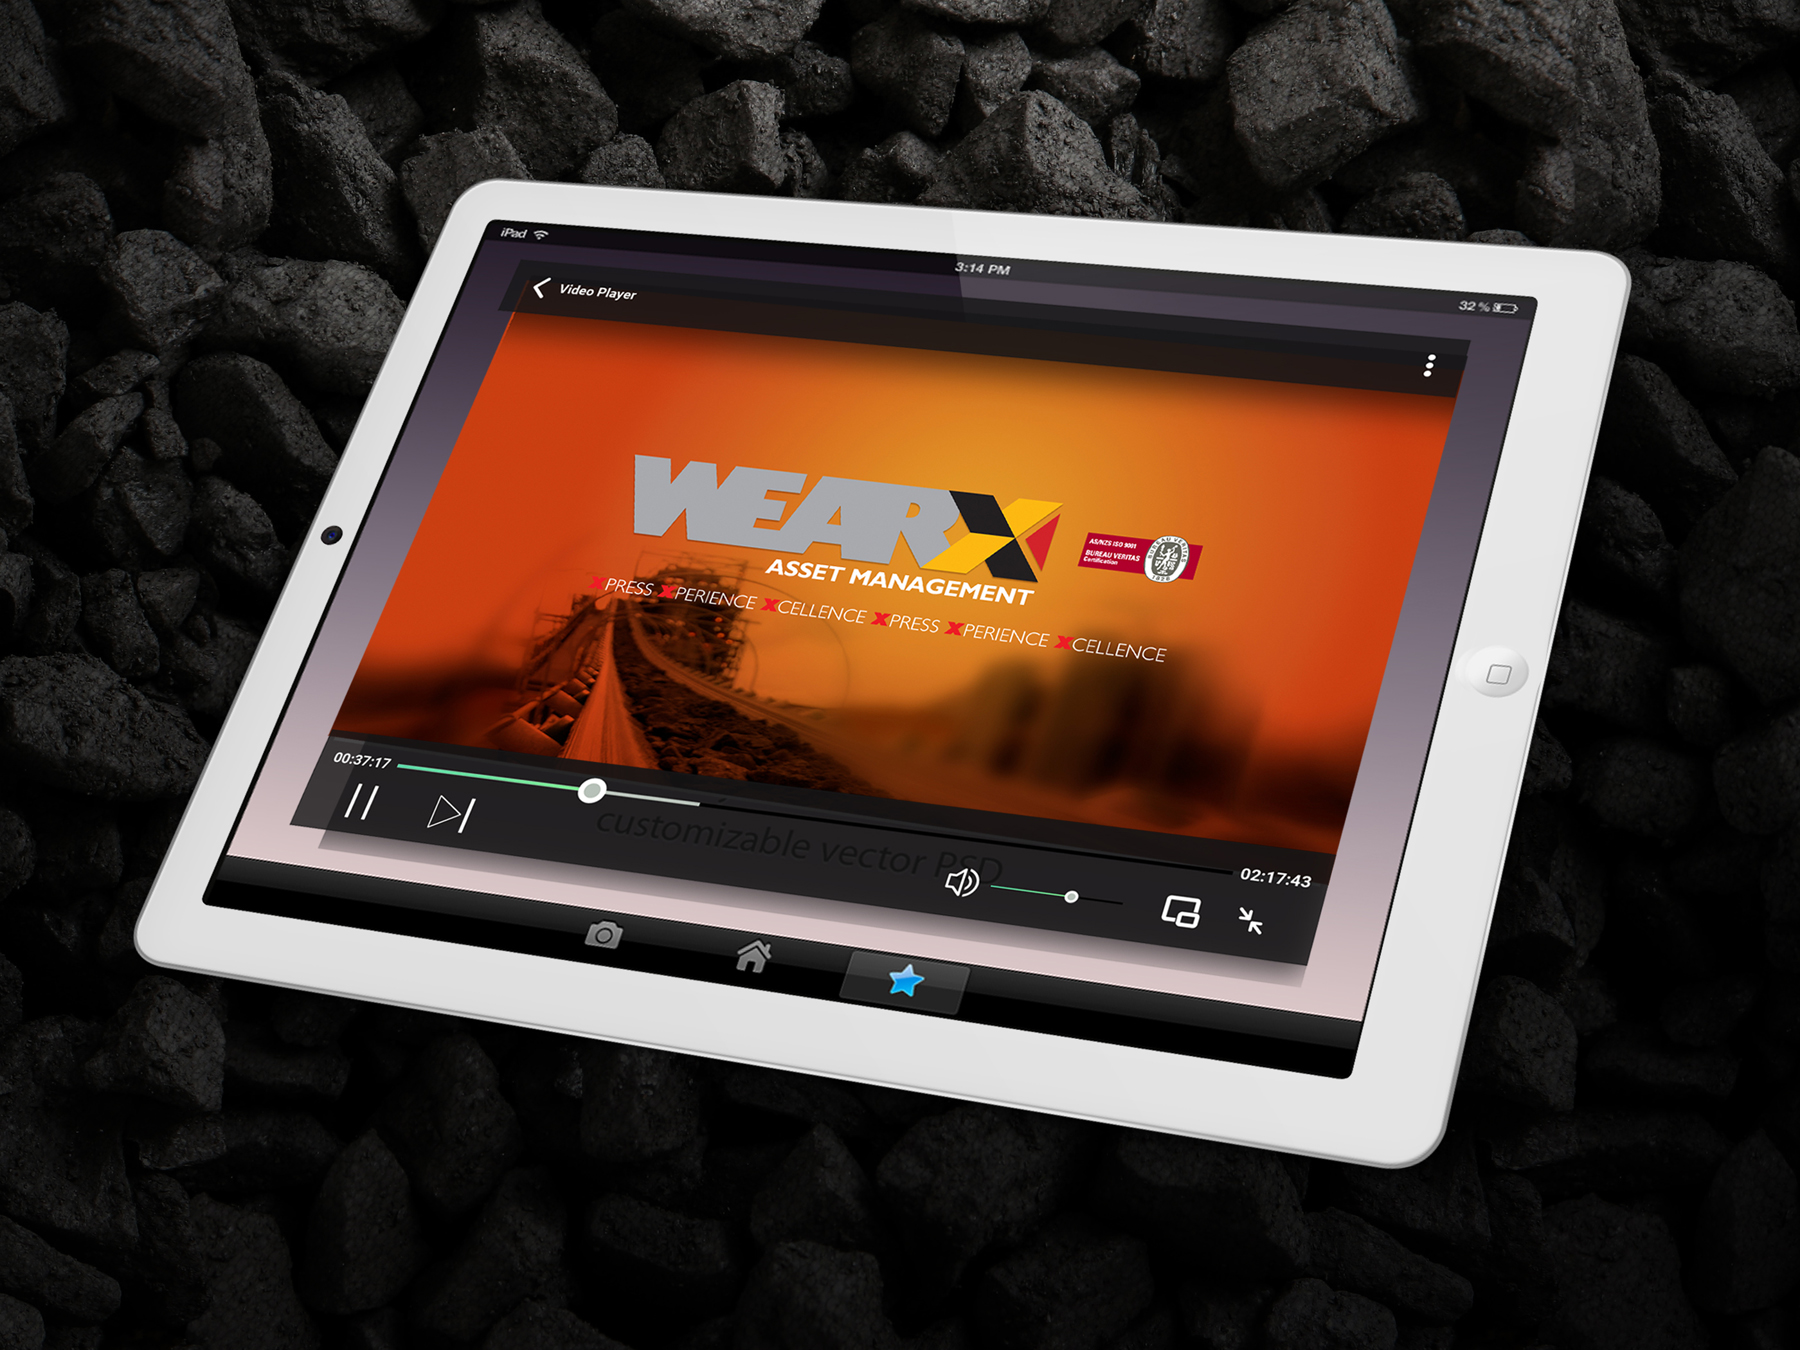 WEARX Video Promotion on iPad